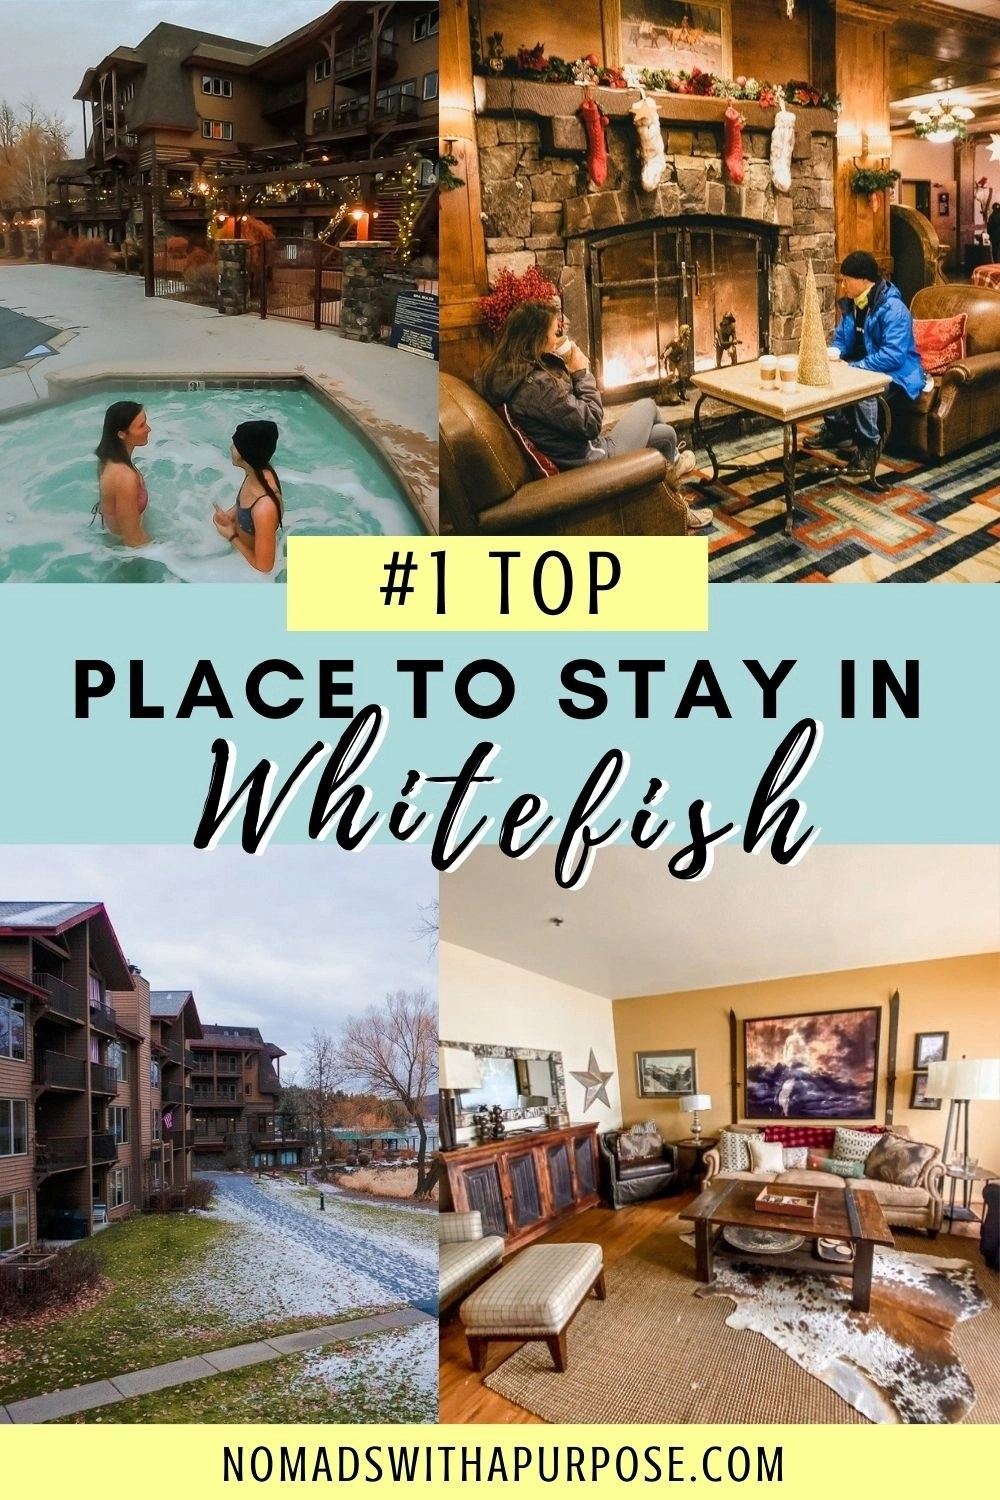 Top Place To Stay In Whitefish Montana